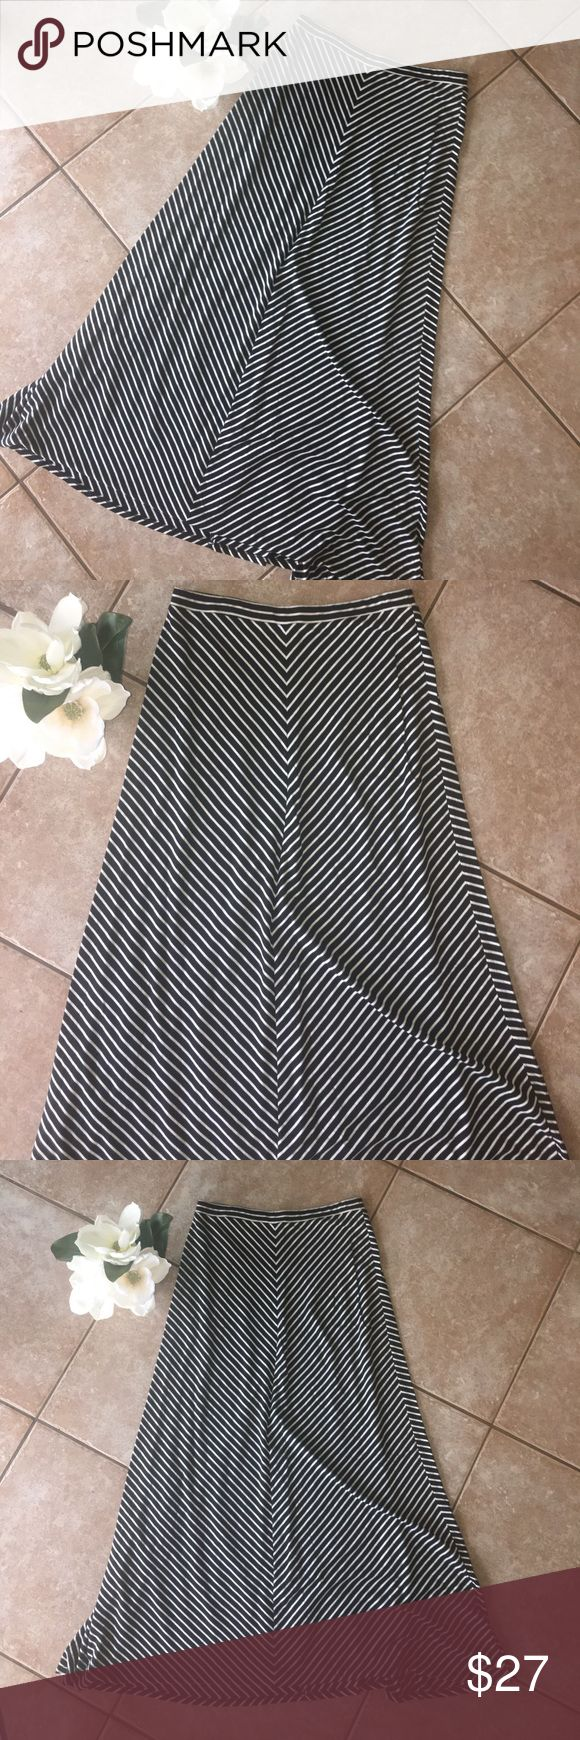 Maxi Skirt - Black and White Lauren Conrad - Gorgeous, stretchy, black and white stripped maxi skirt. Size S , worn maybe once or twice. Feels brand new! Offers welcome! LC Lauren Conrad Skirts Maxi